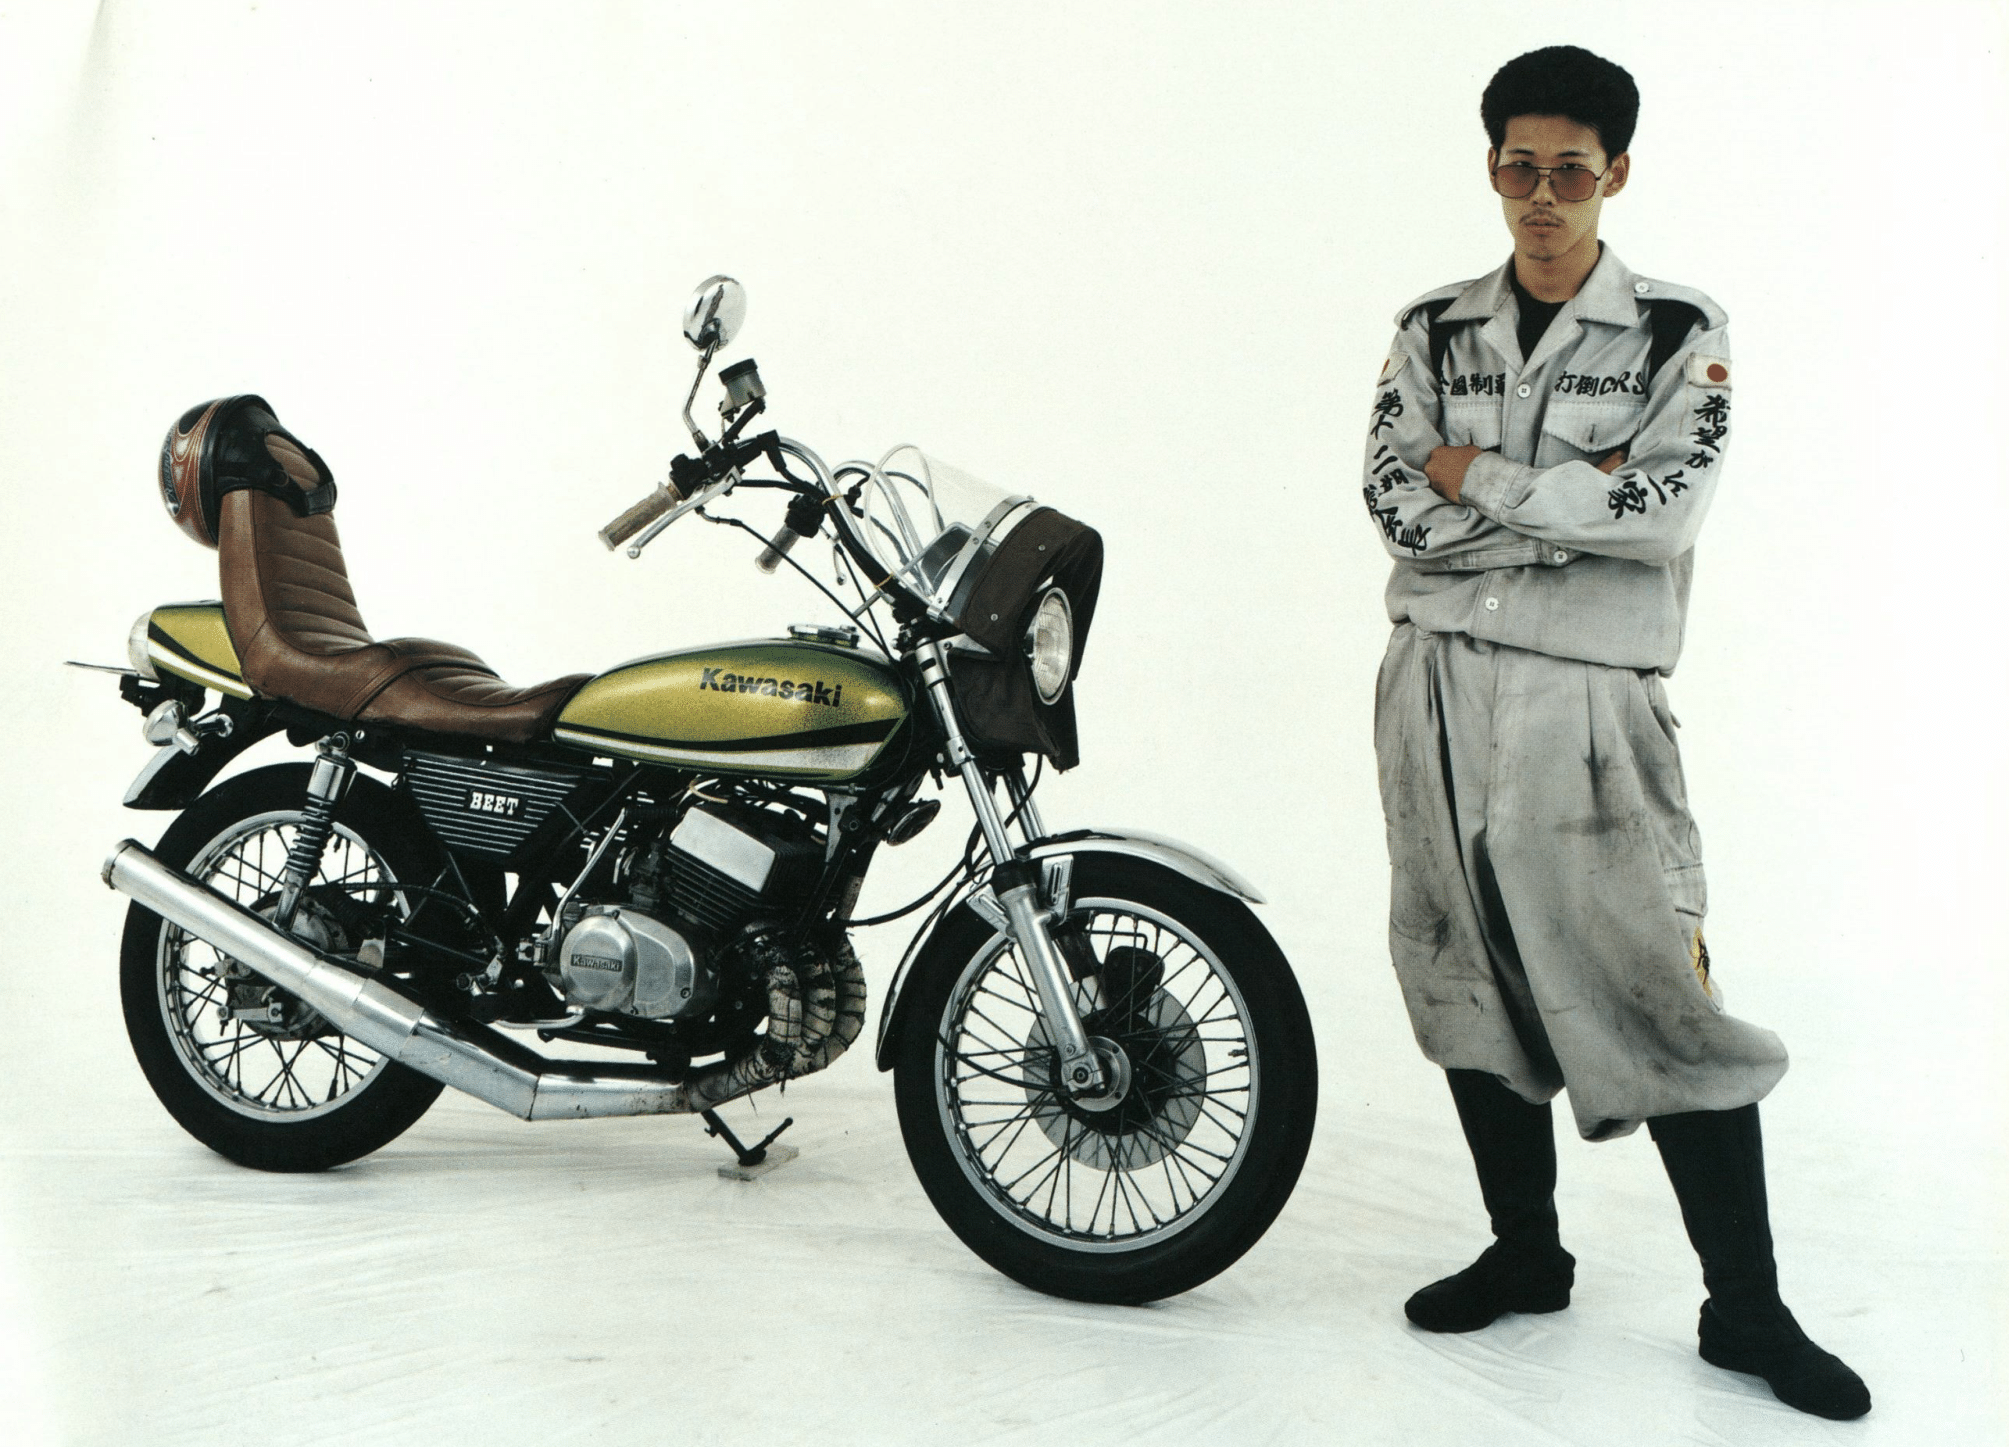 A bōsōzoku member wearing a white tokkōfuku and intimidating expression stands with arms crossed next to his modified Kawasaki motorcycle. The motorcycle has a yellow paint-job, inward-bent handles, extremely large muffler, and a tall, brown leather seat.